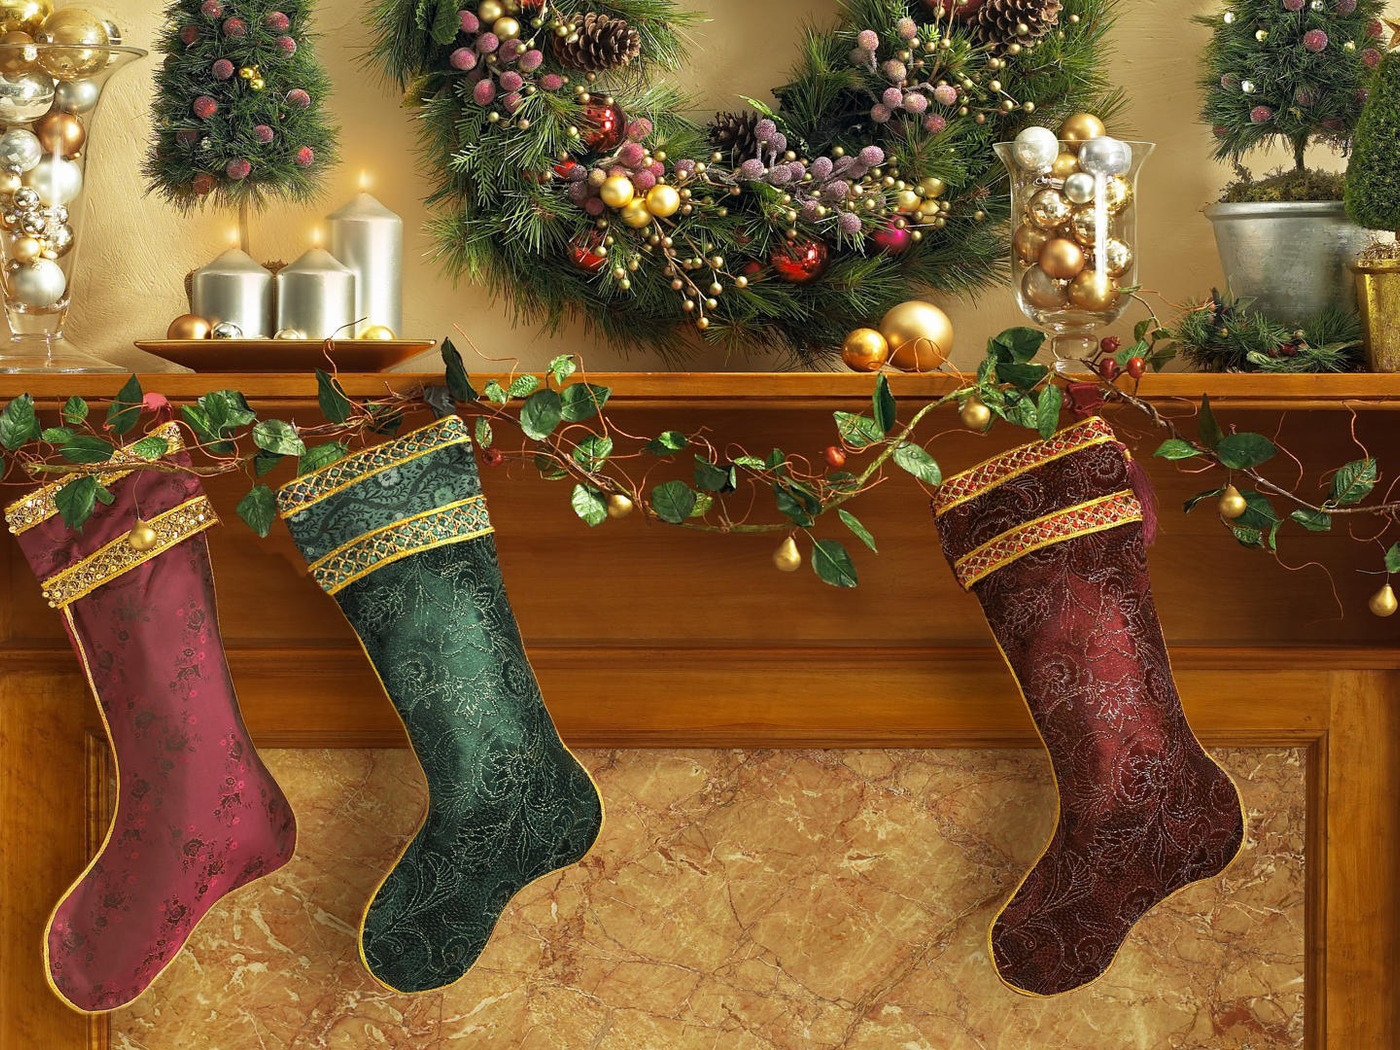 Pictures New year Socks Holidays Christmas